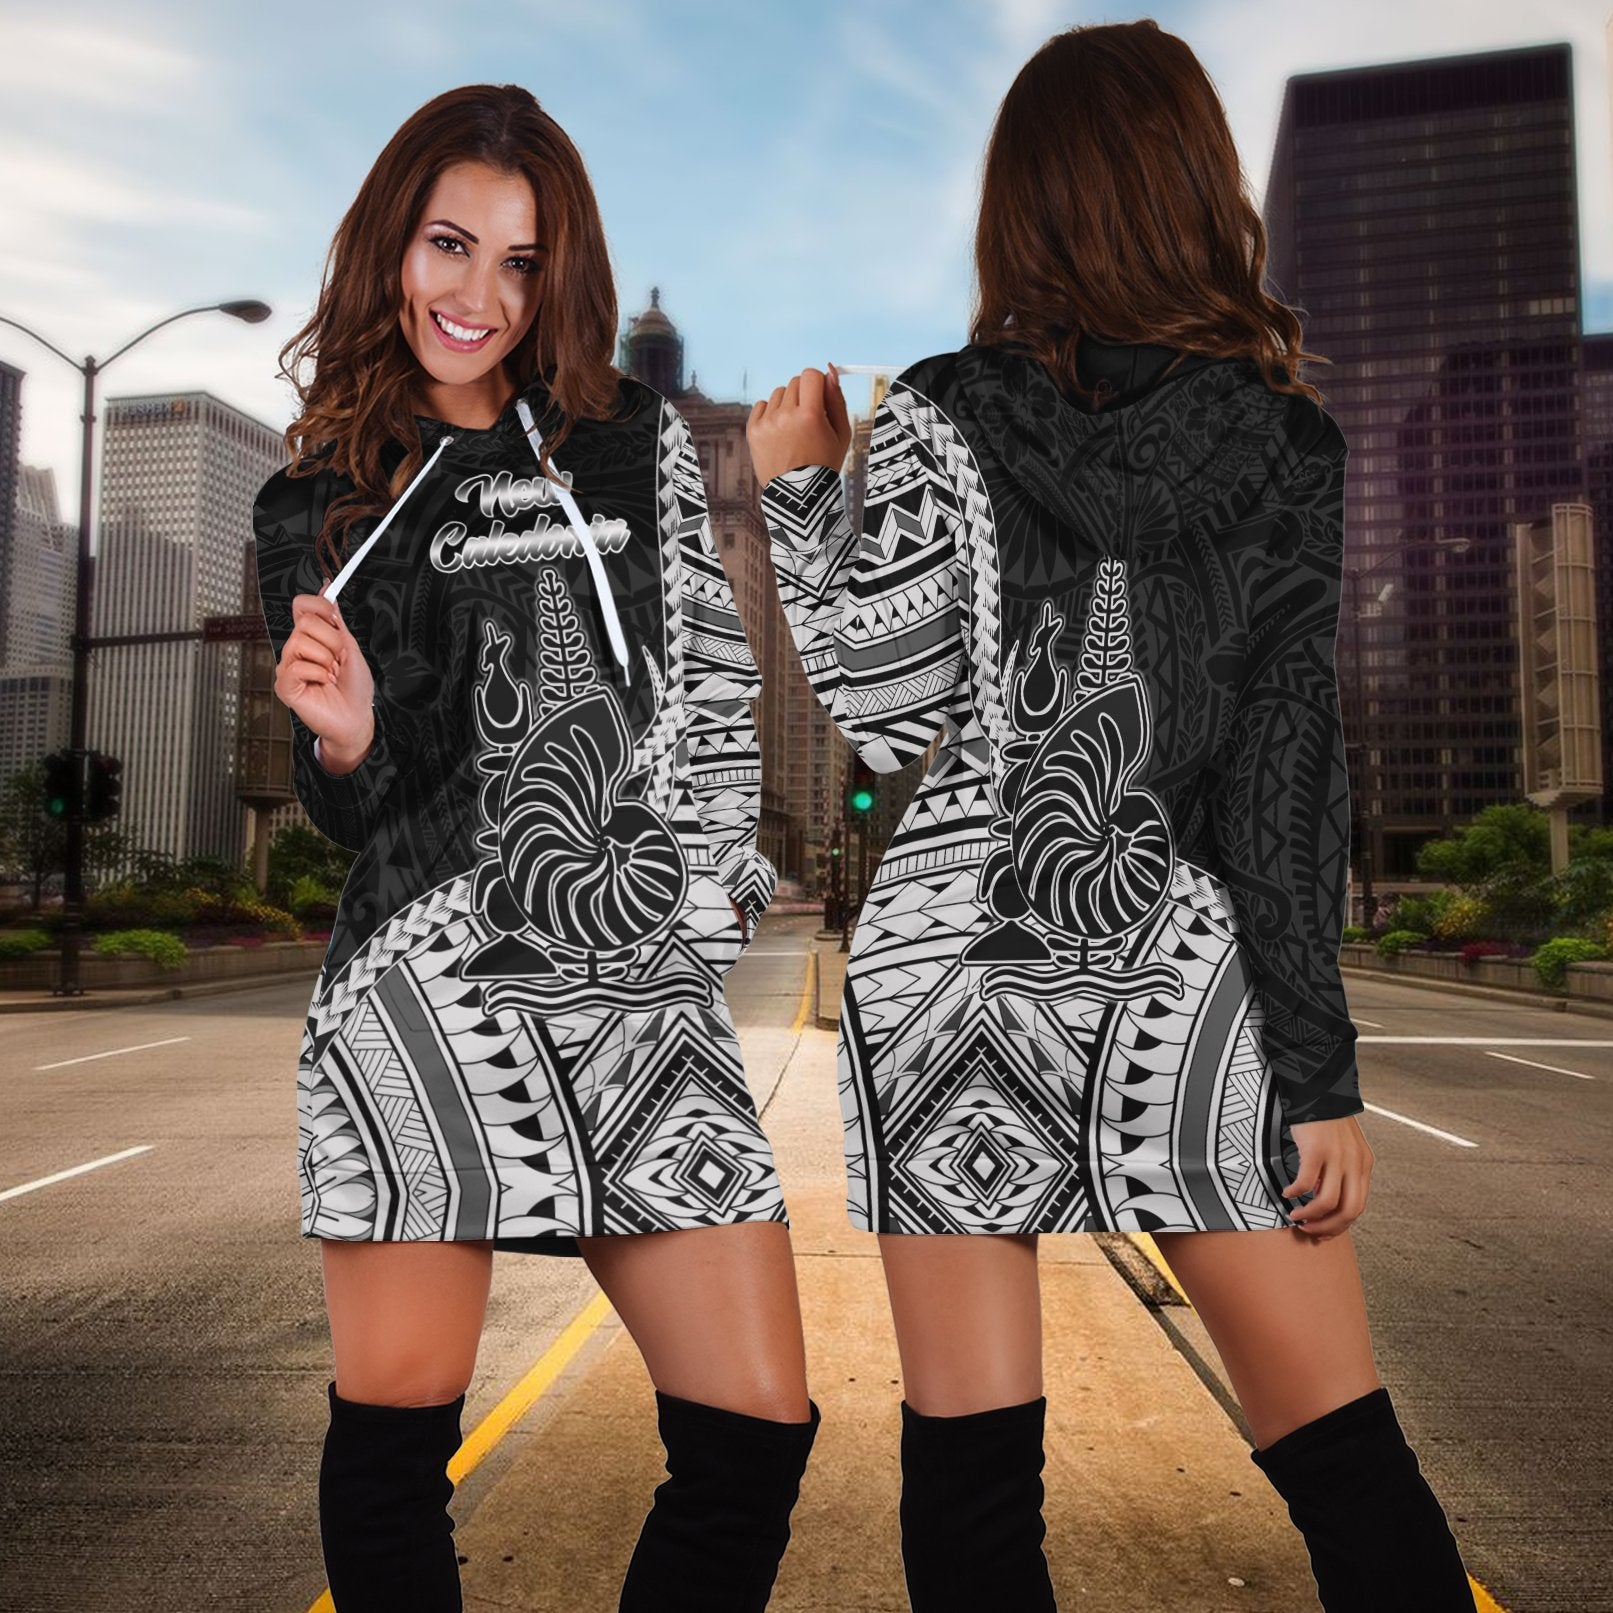 New Caladonia Seal Of New Caledonia Islands Polynesian Patterns Hoodie Dress - luxamz